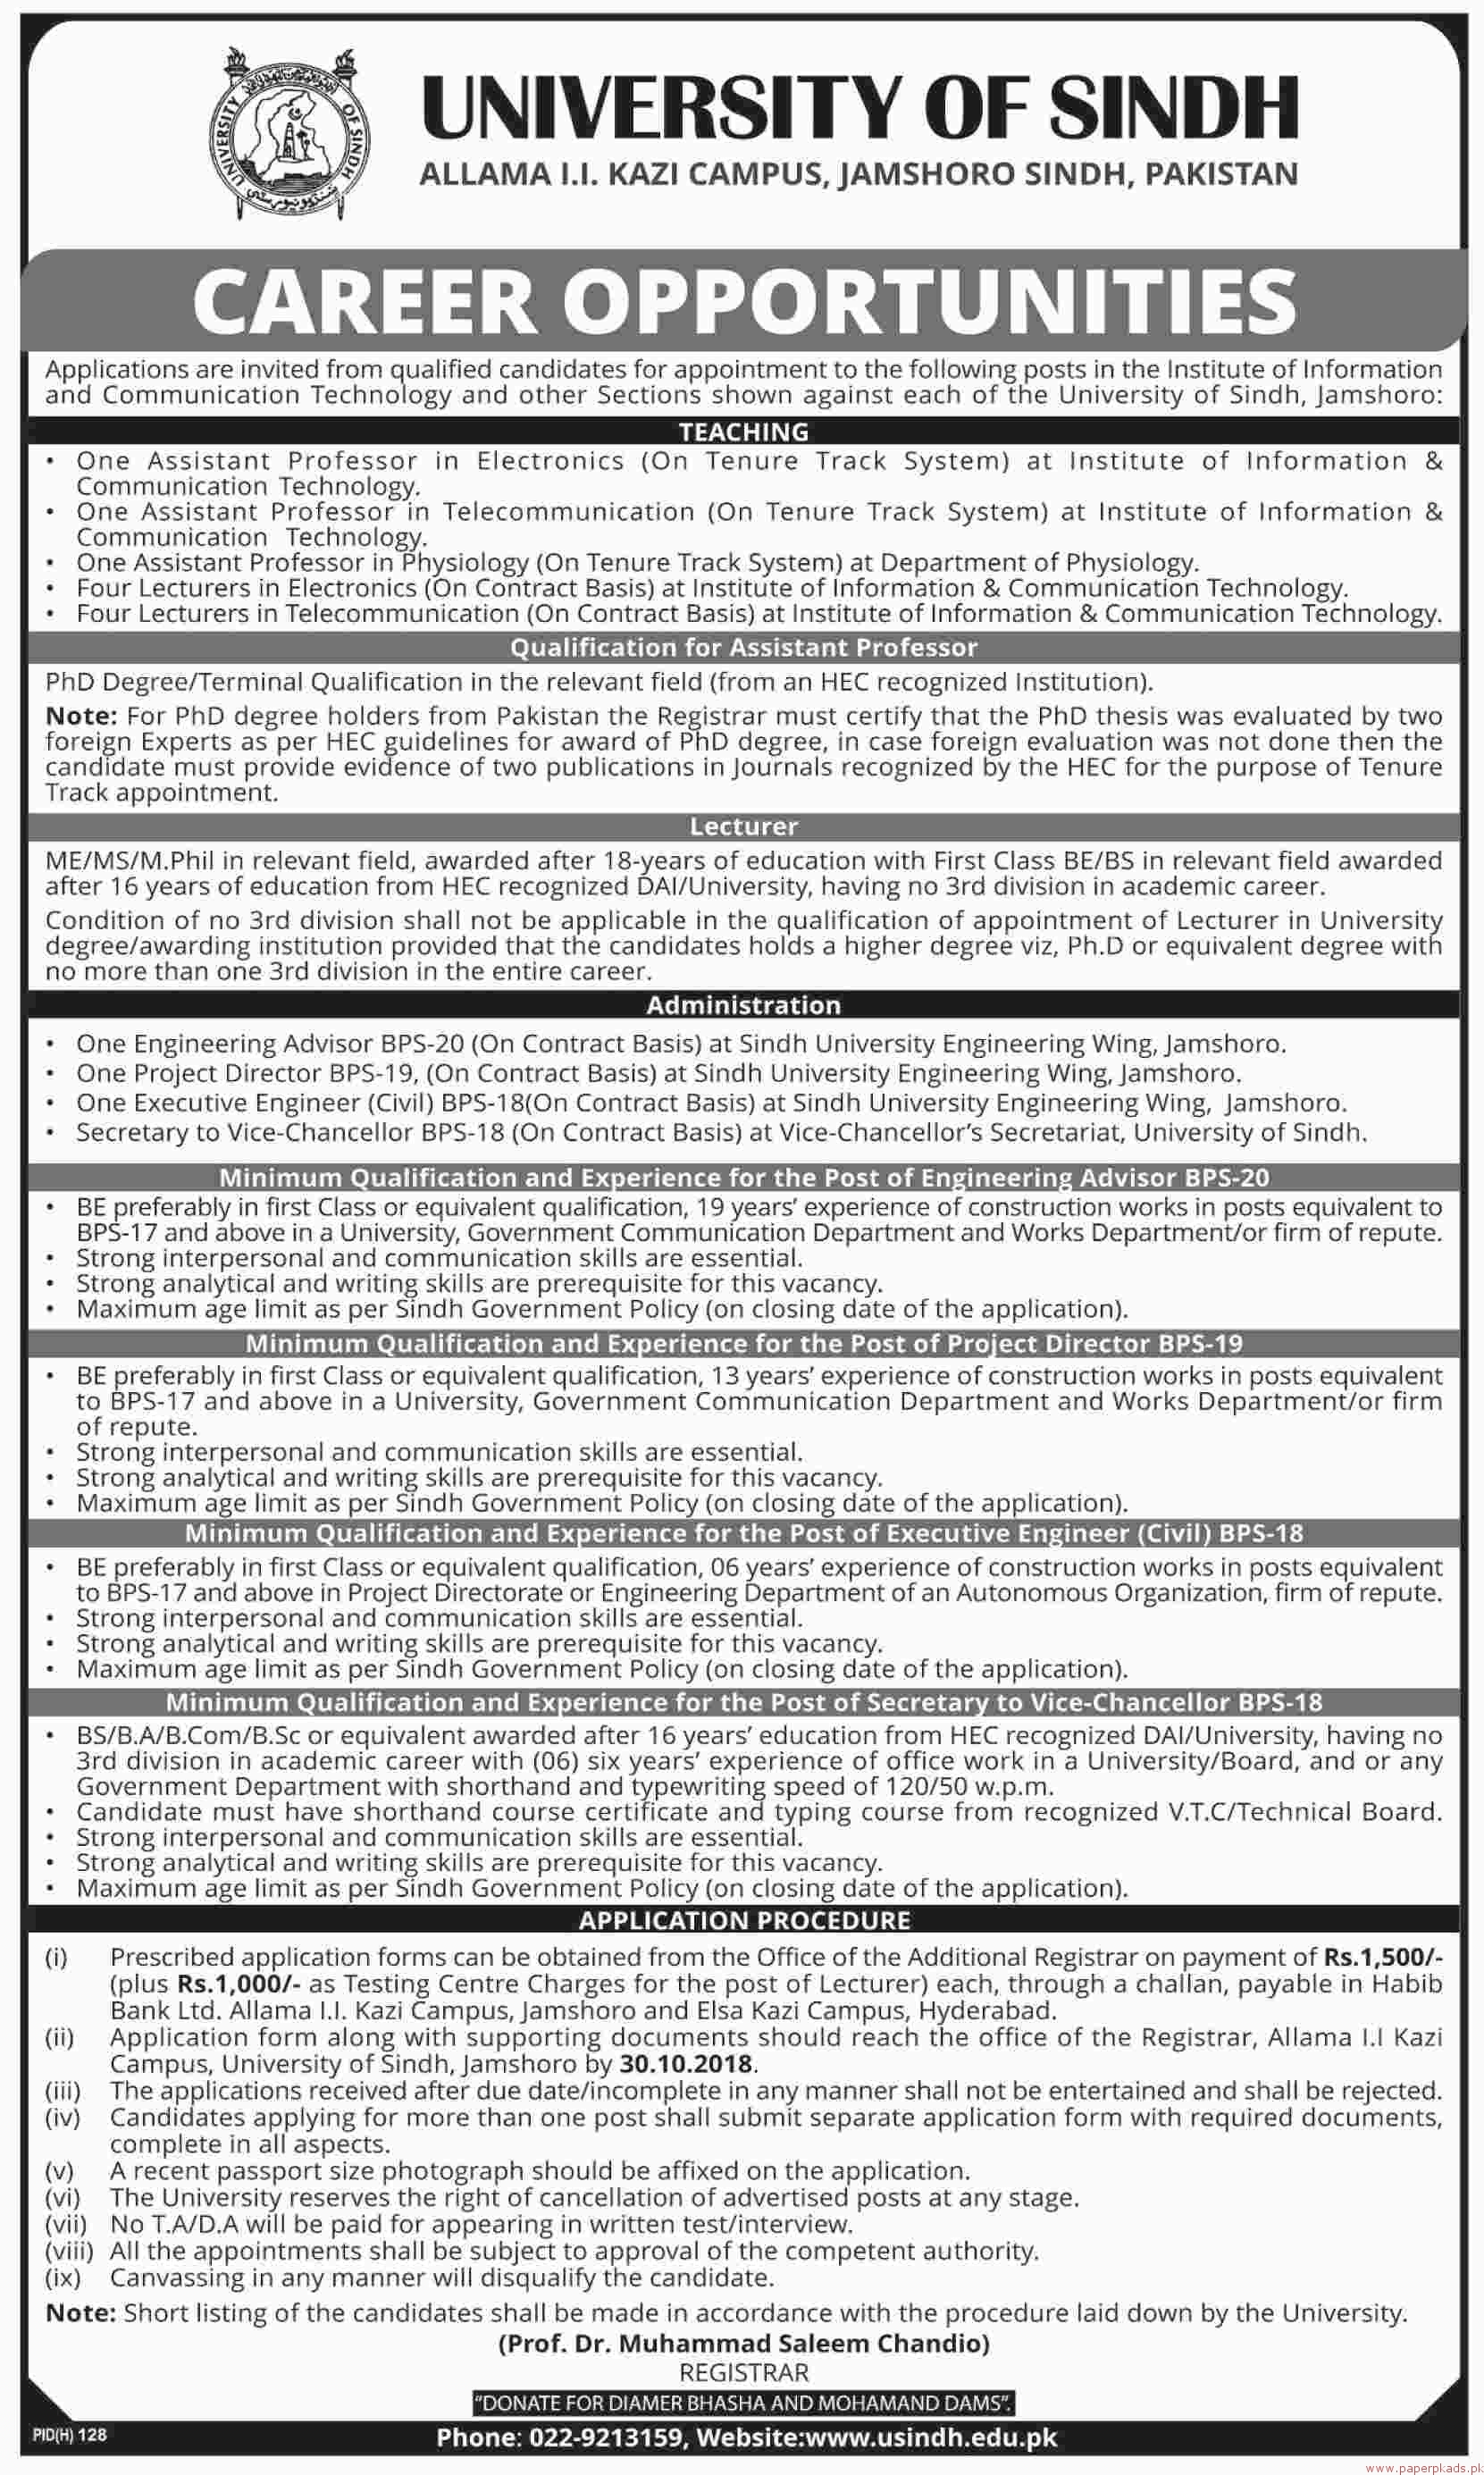 University of Sindh Jobs 2018 Latest